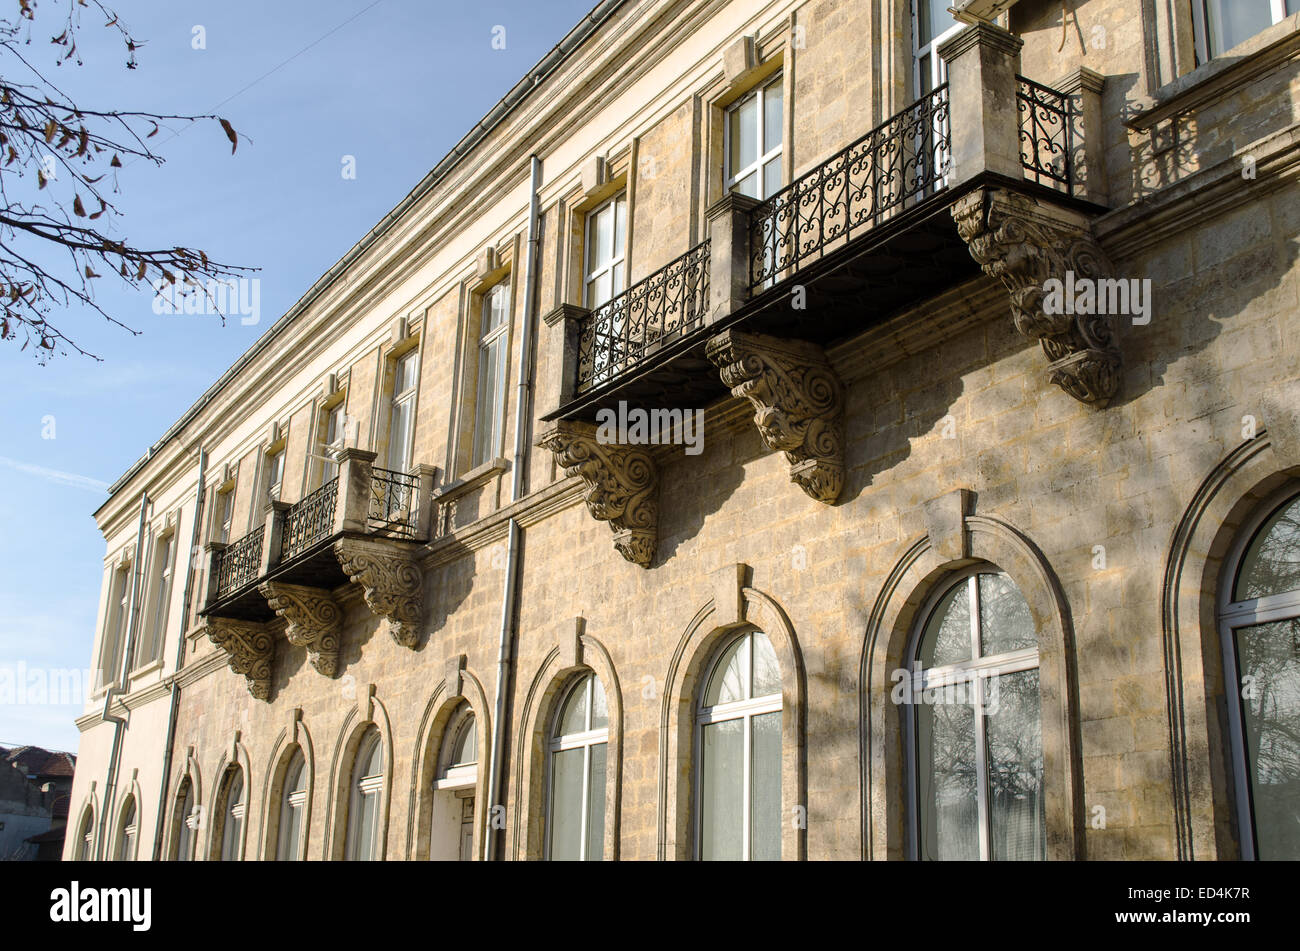 Building neoclassical style late 19th century, Bulgaria Ruse Stock Photo